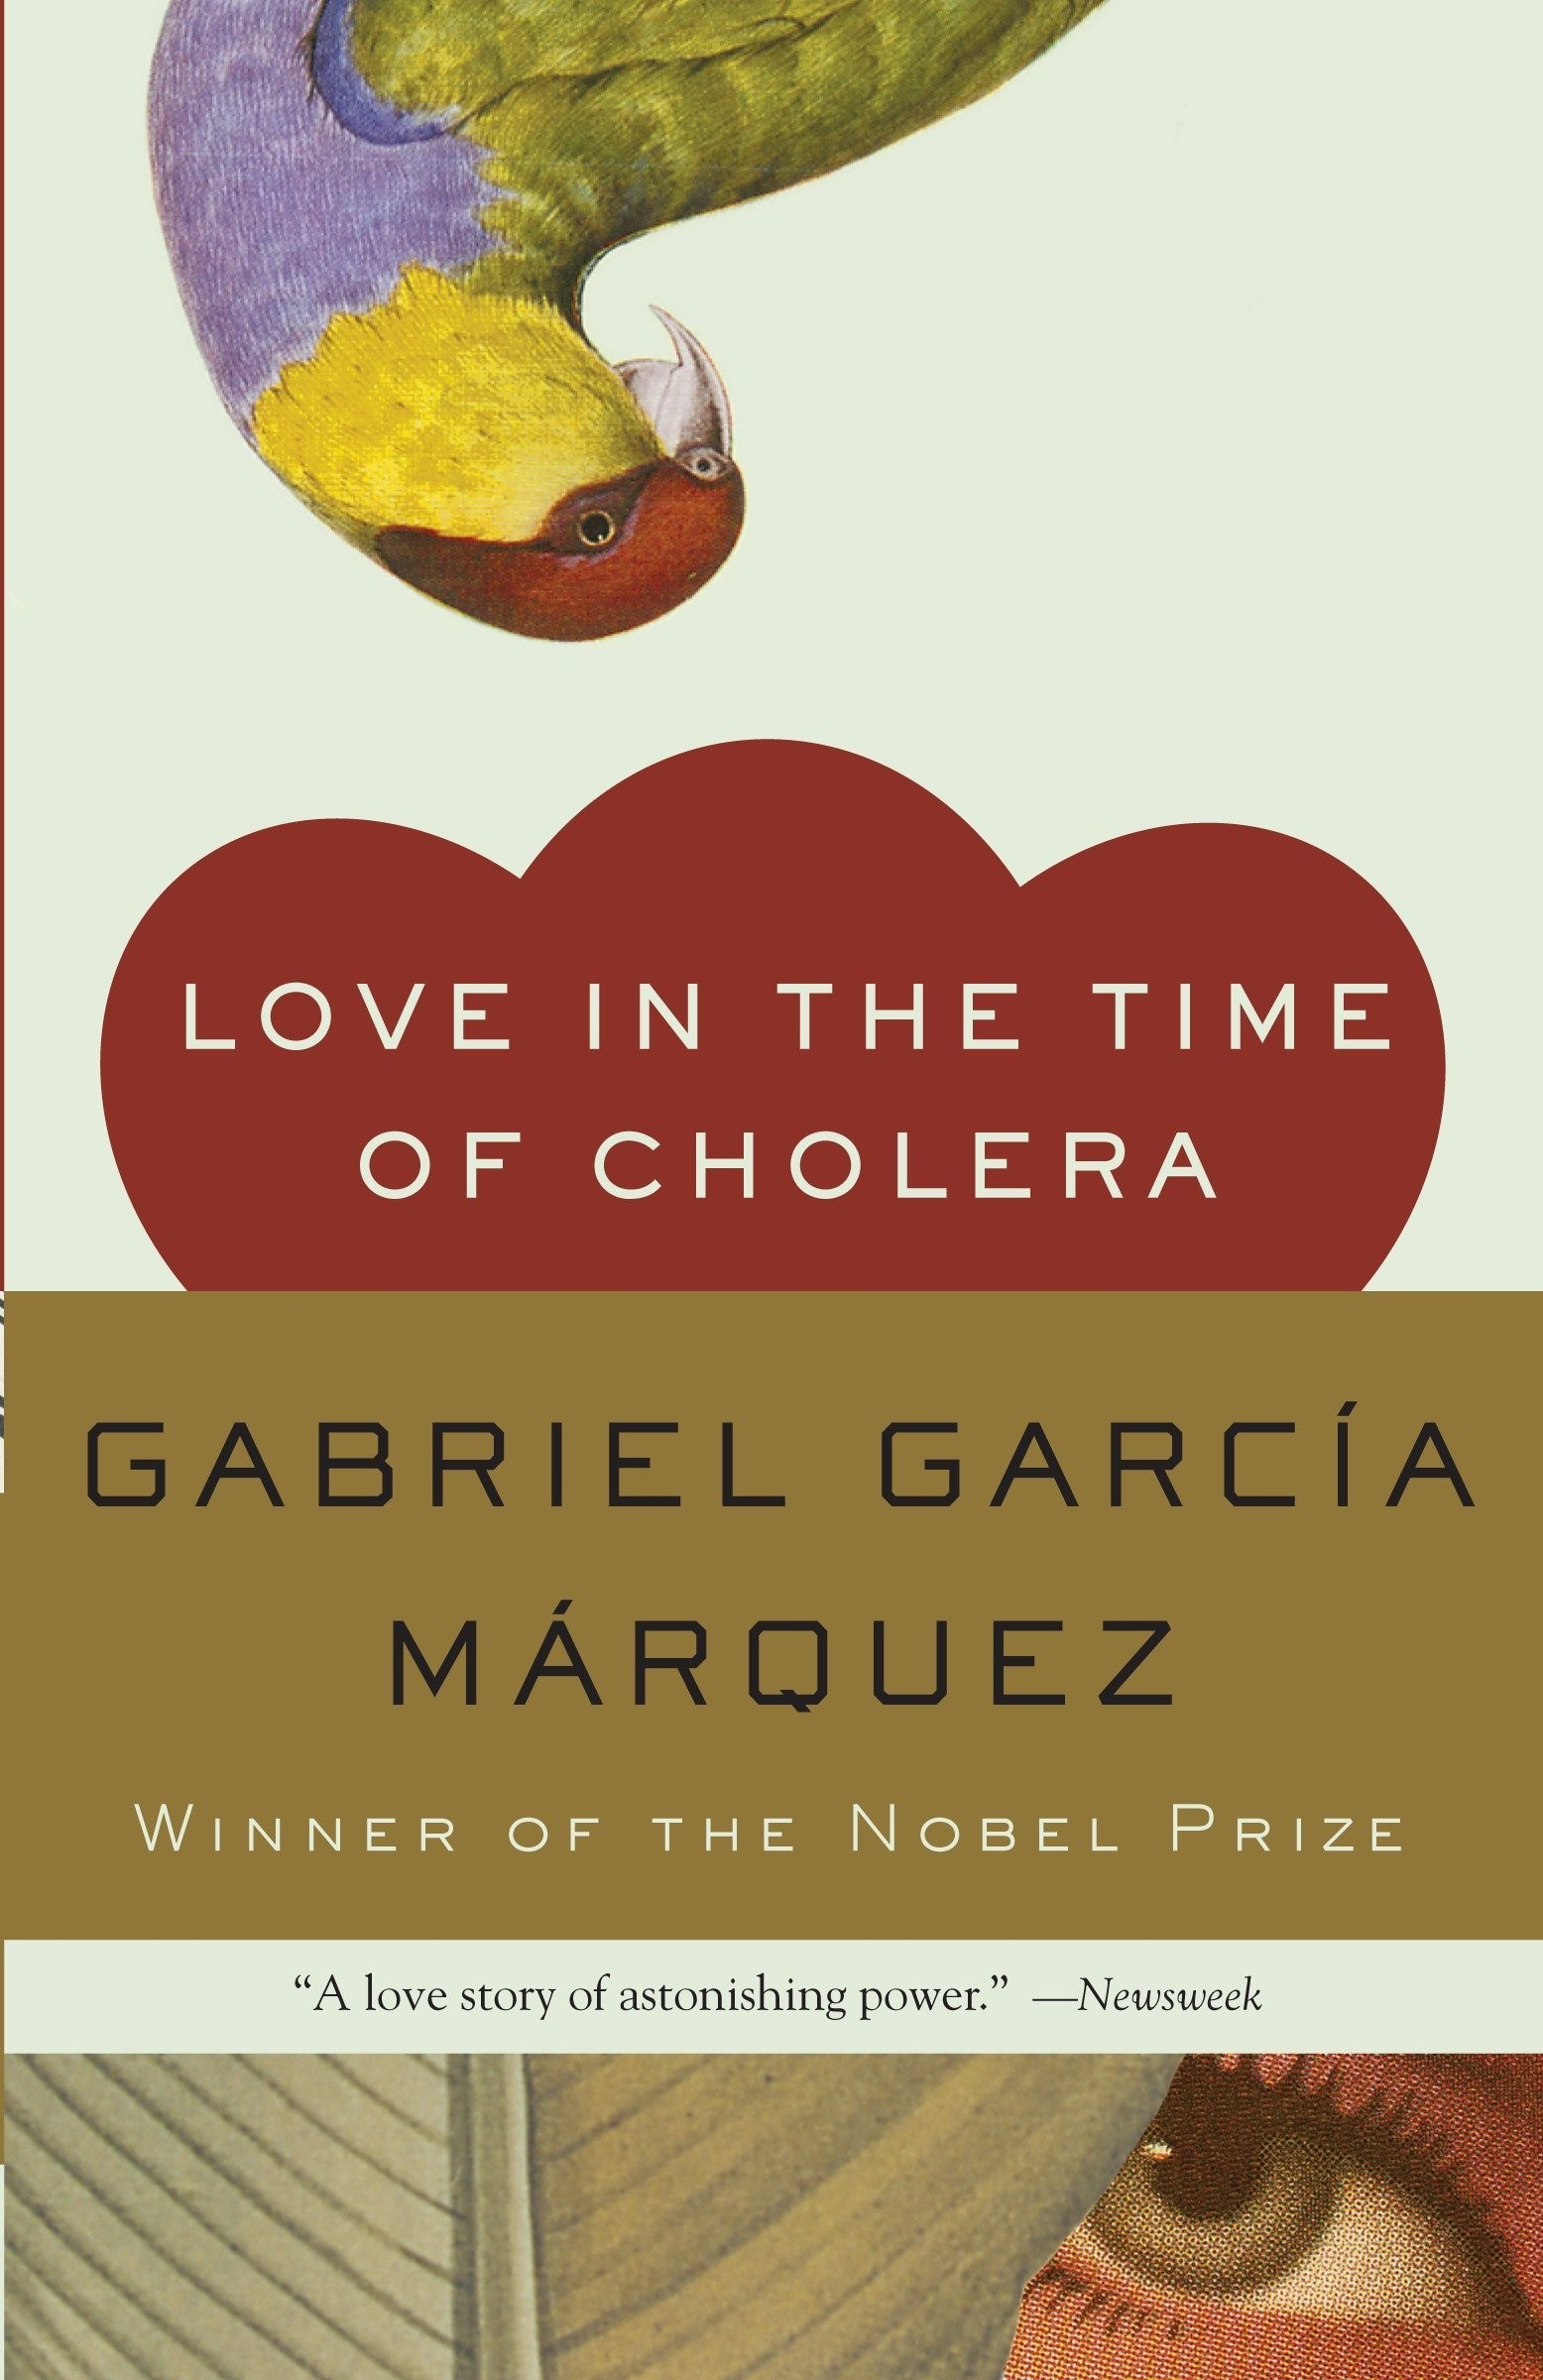 MFAH Book Club - Marquez, Love in the Time of Cholera